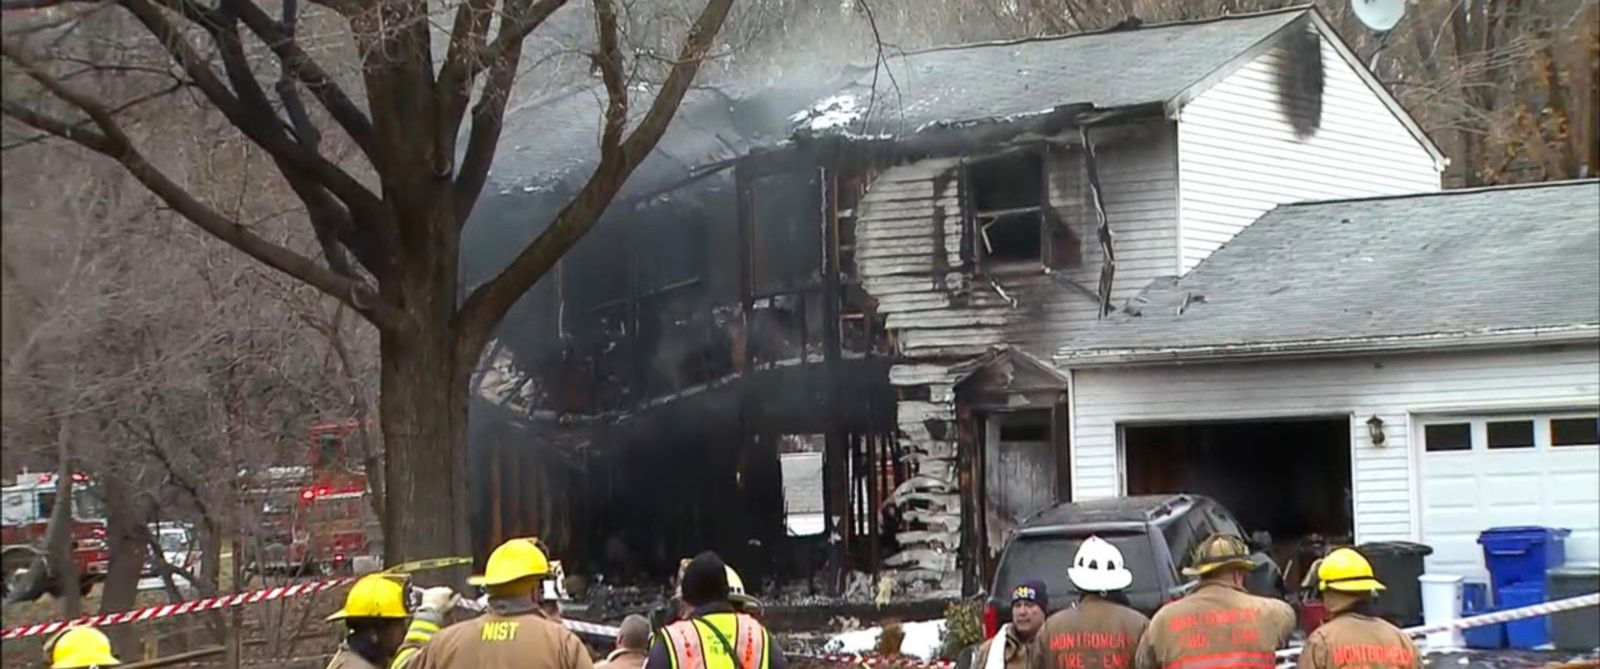 PHOTO: Smoke is seen after a small plane crashed in to a home and damaged others in Gaithersburg, Maryland, Dec. 8, 2014.